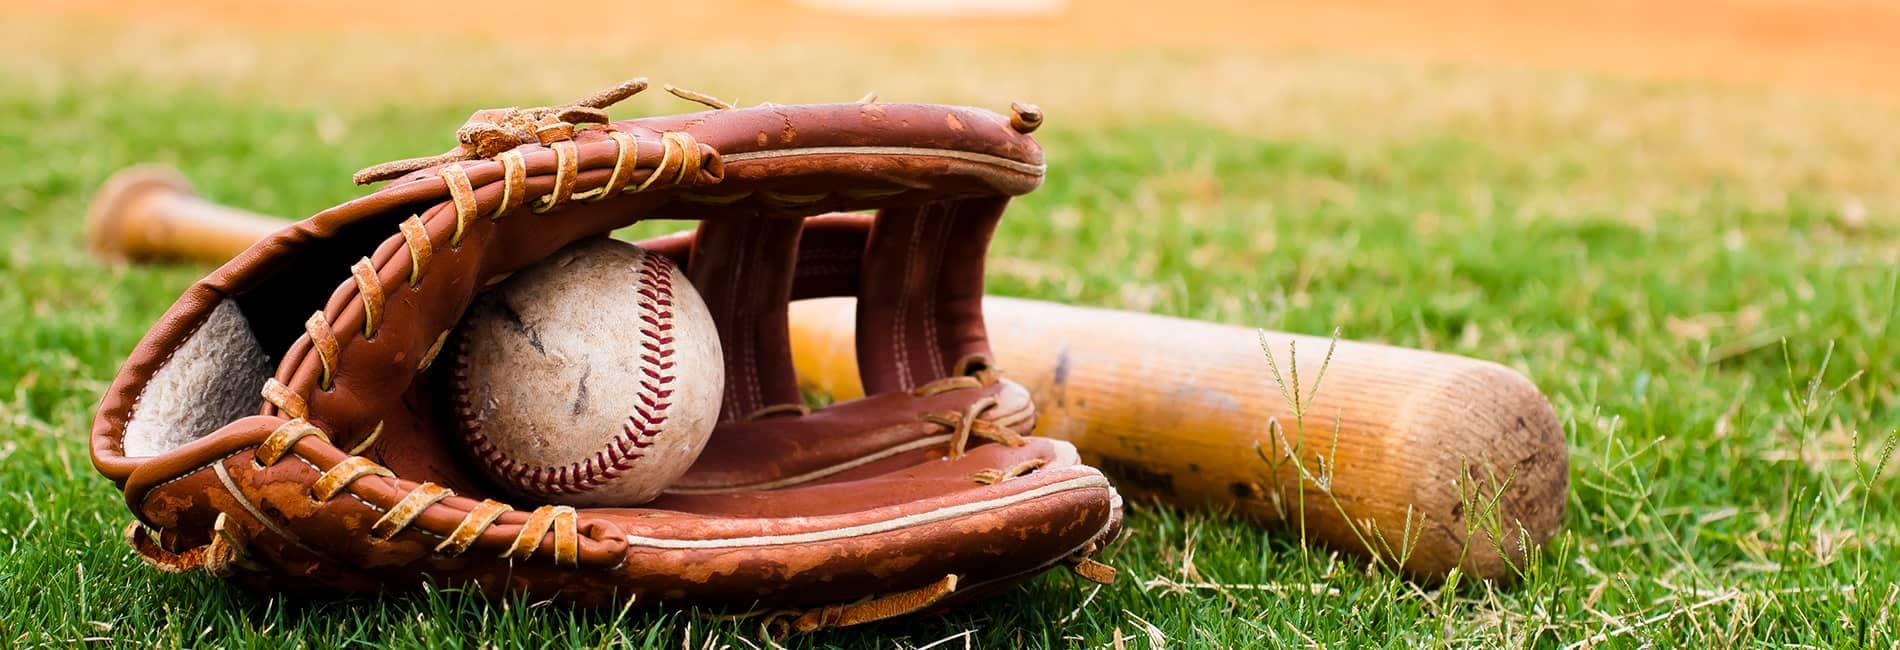 Baseball Glove, Bat and Ball on the Field